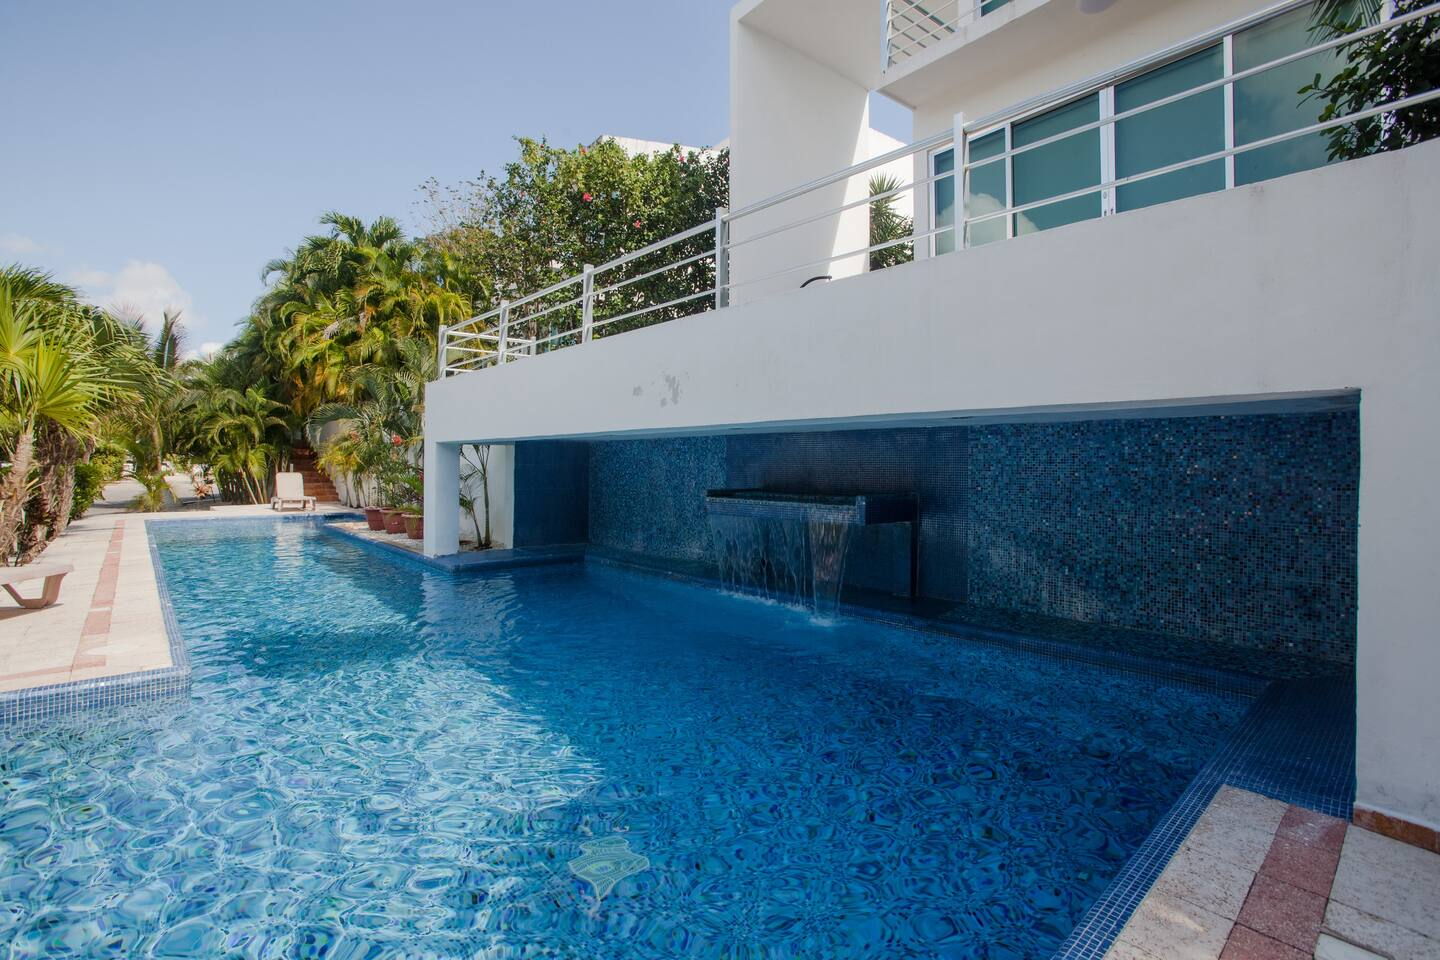 This swimming pool access directly through our private garden